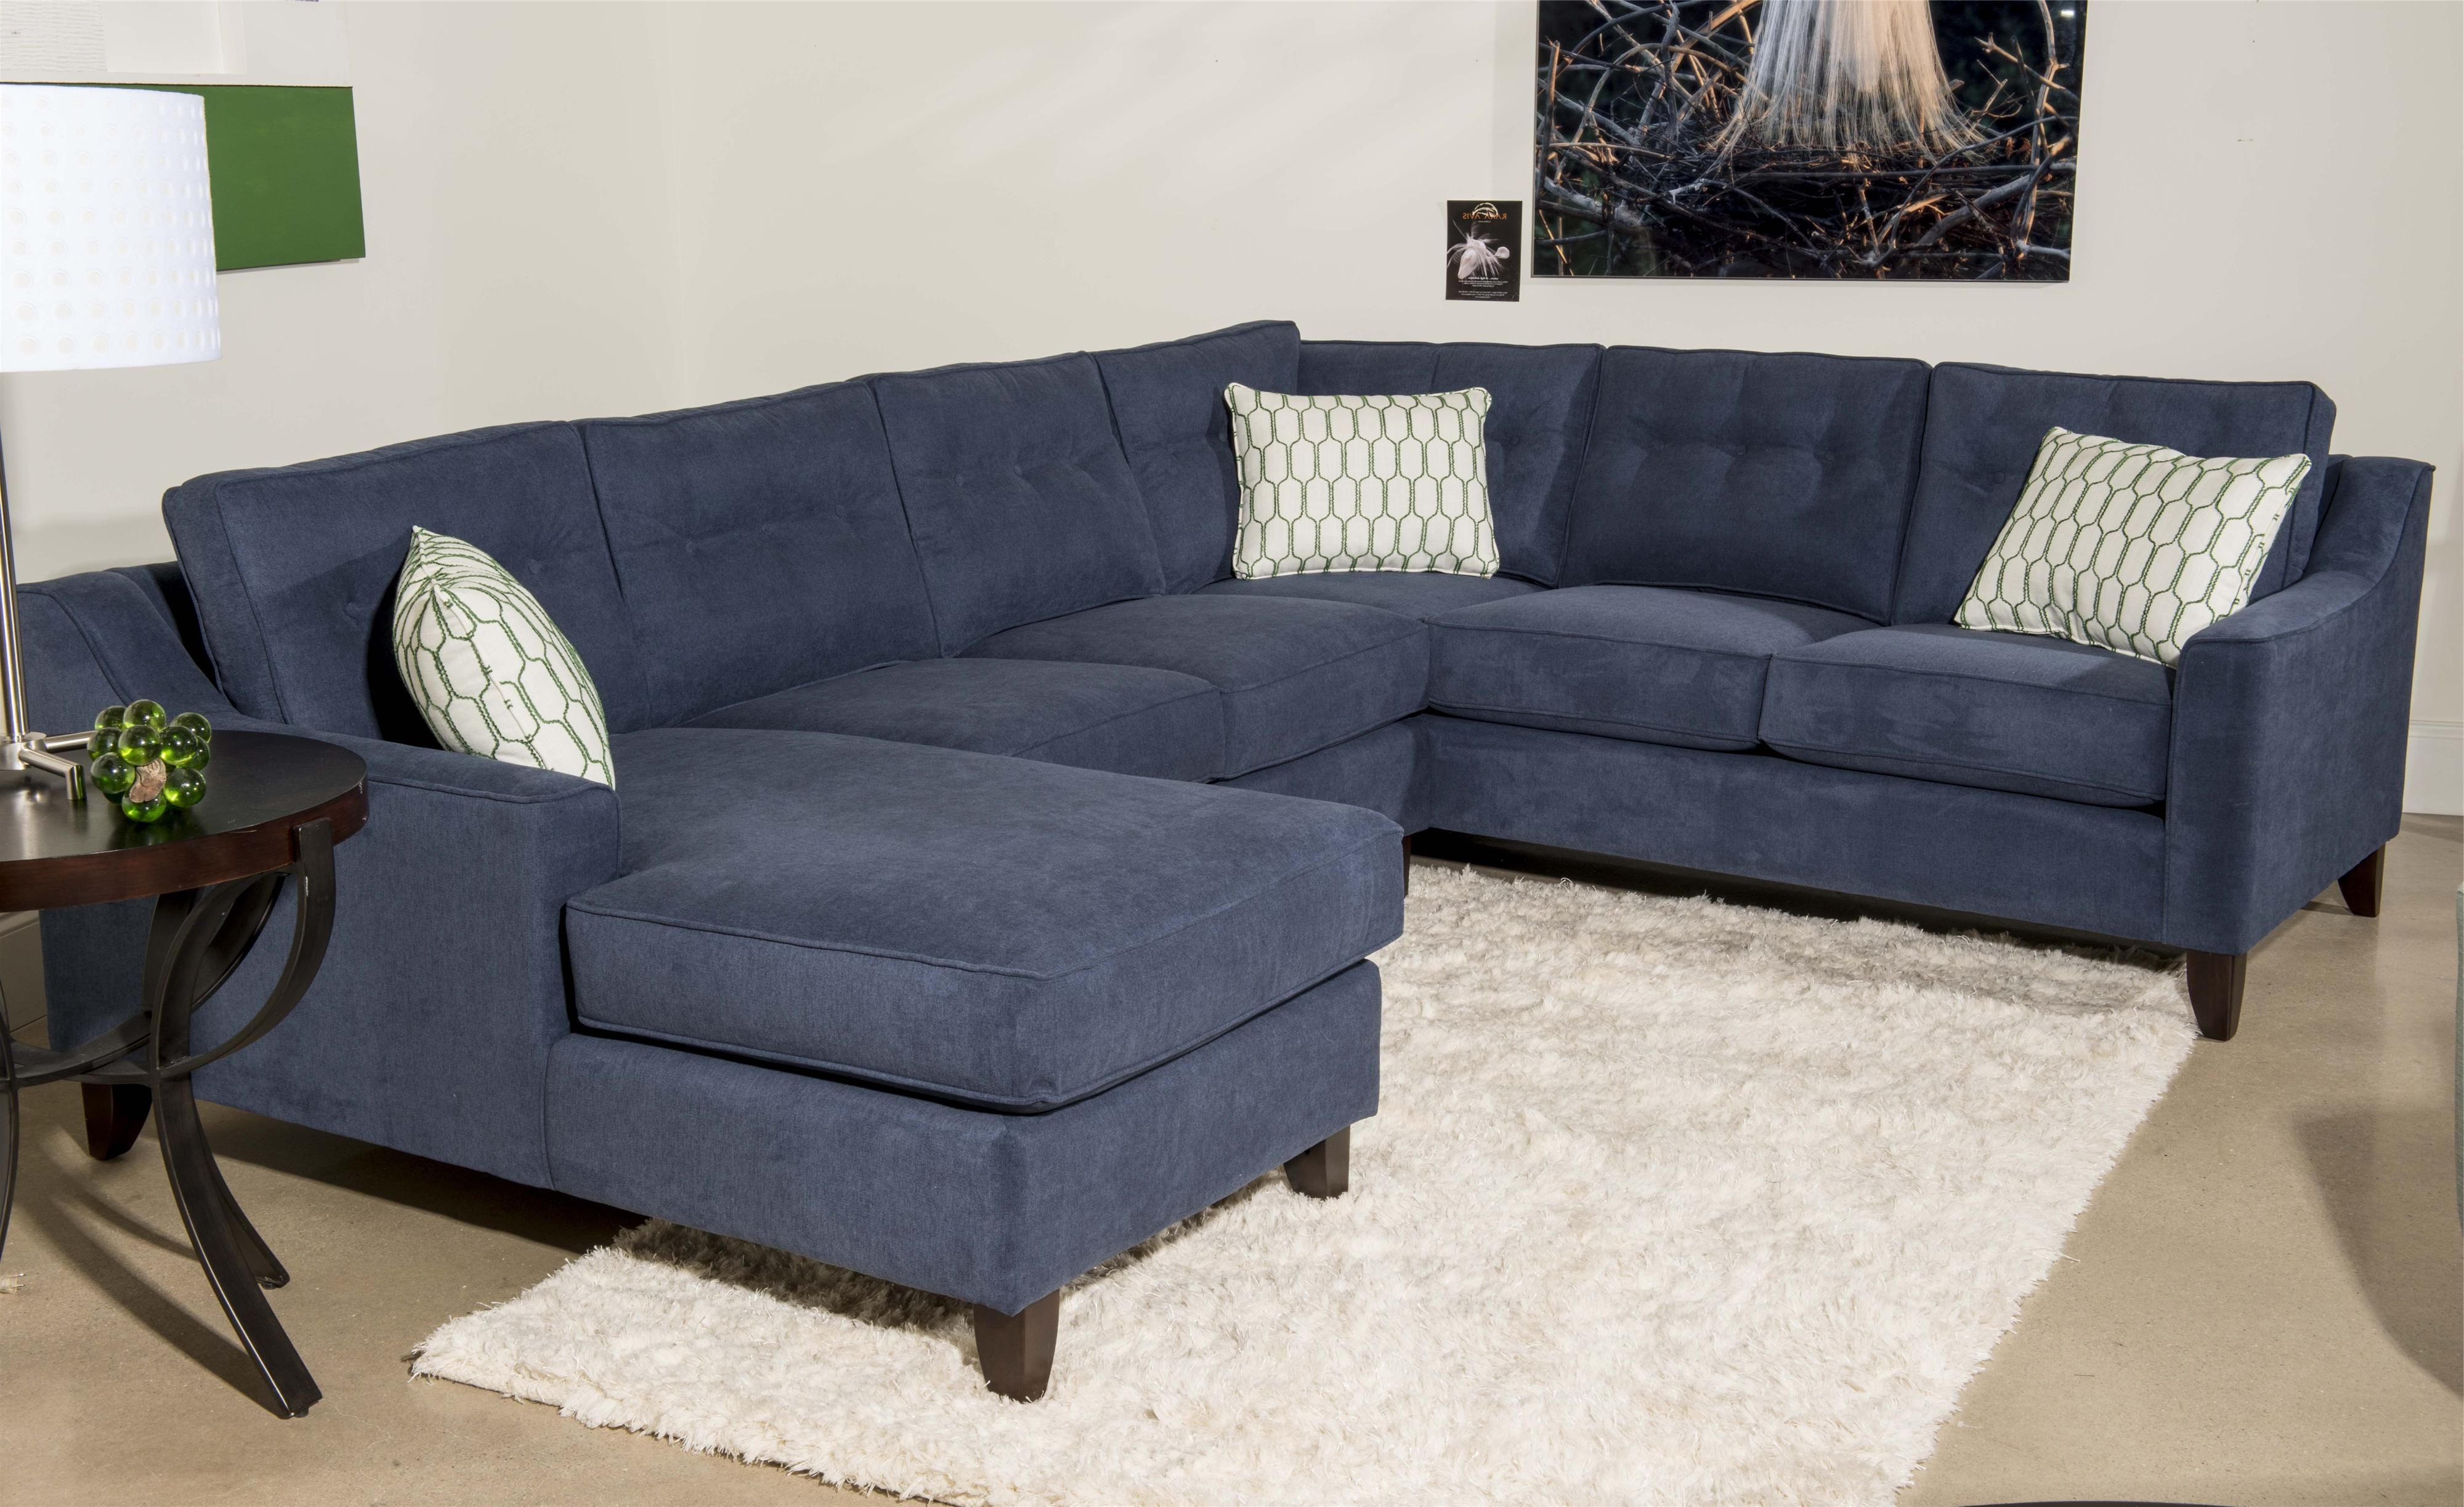 Klaussner Audrina Contemporary 3 Piece Sectional Sofa With Chaise Regarding Famous 3 Piece Sectional Sleeper Sofas (View 8 of 15)